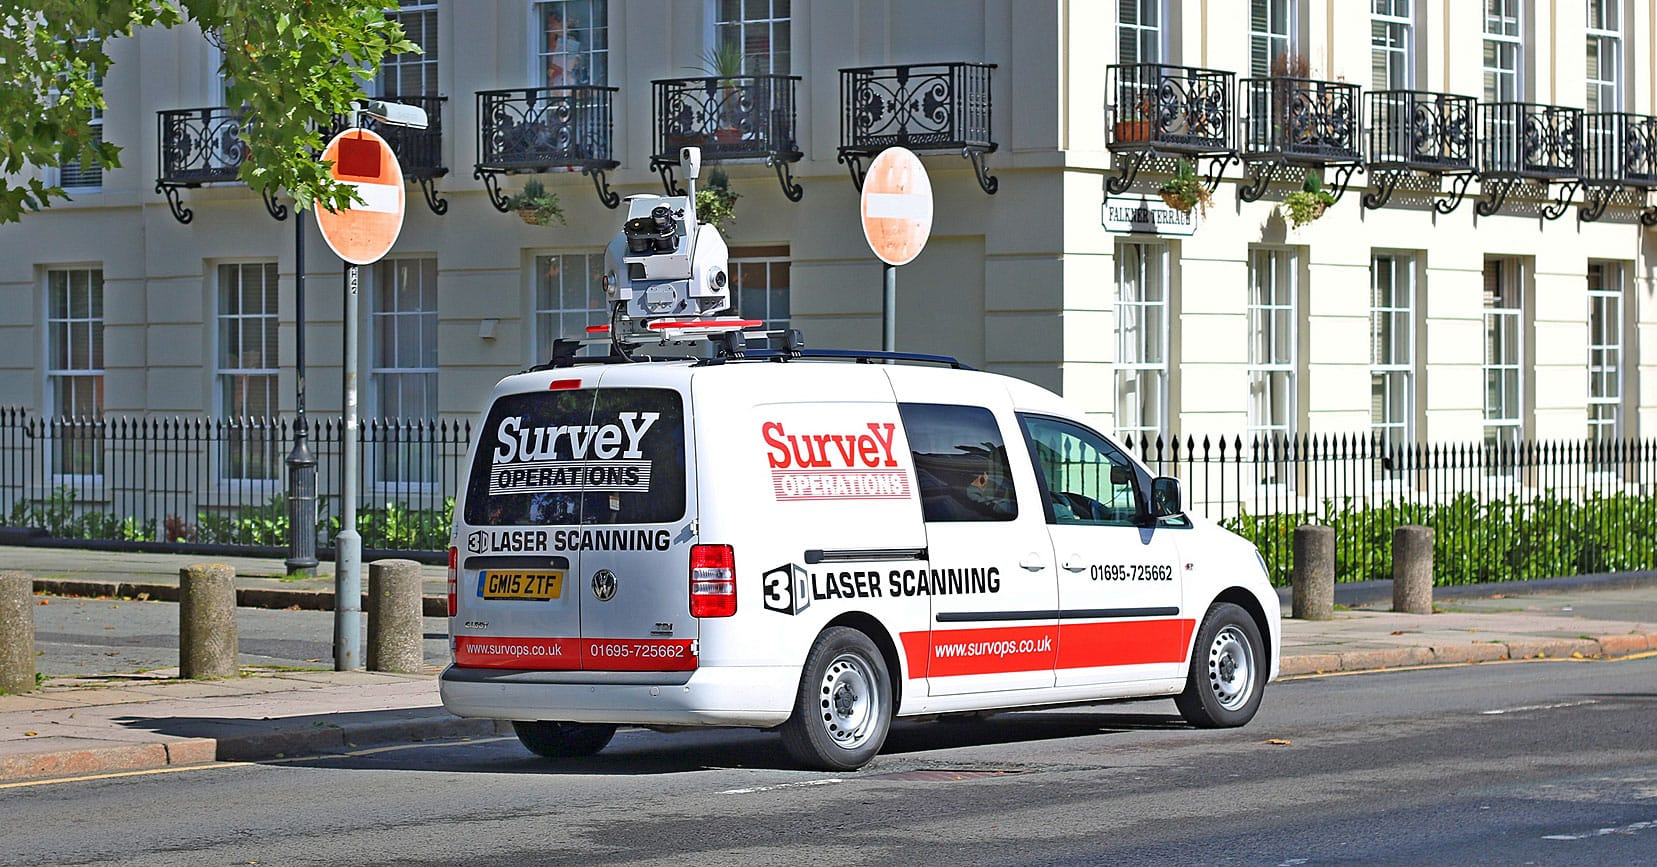 Survey Operations mobile mapping van.